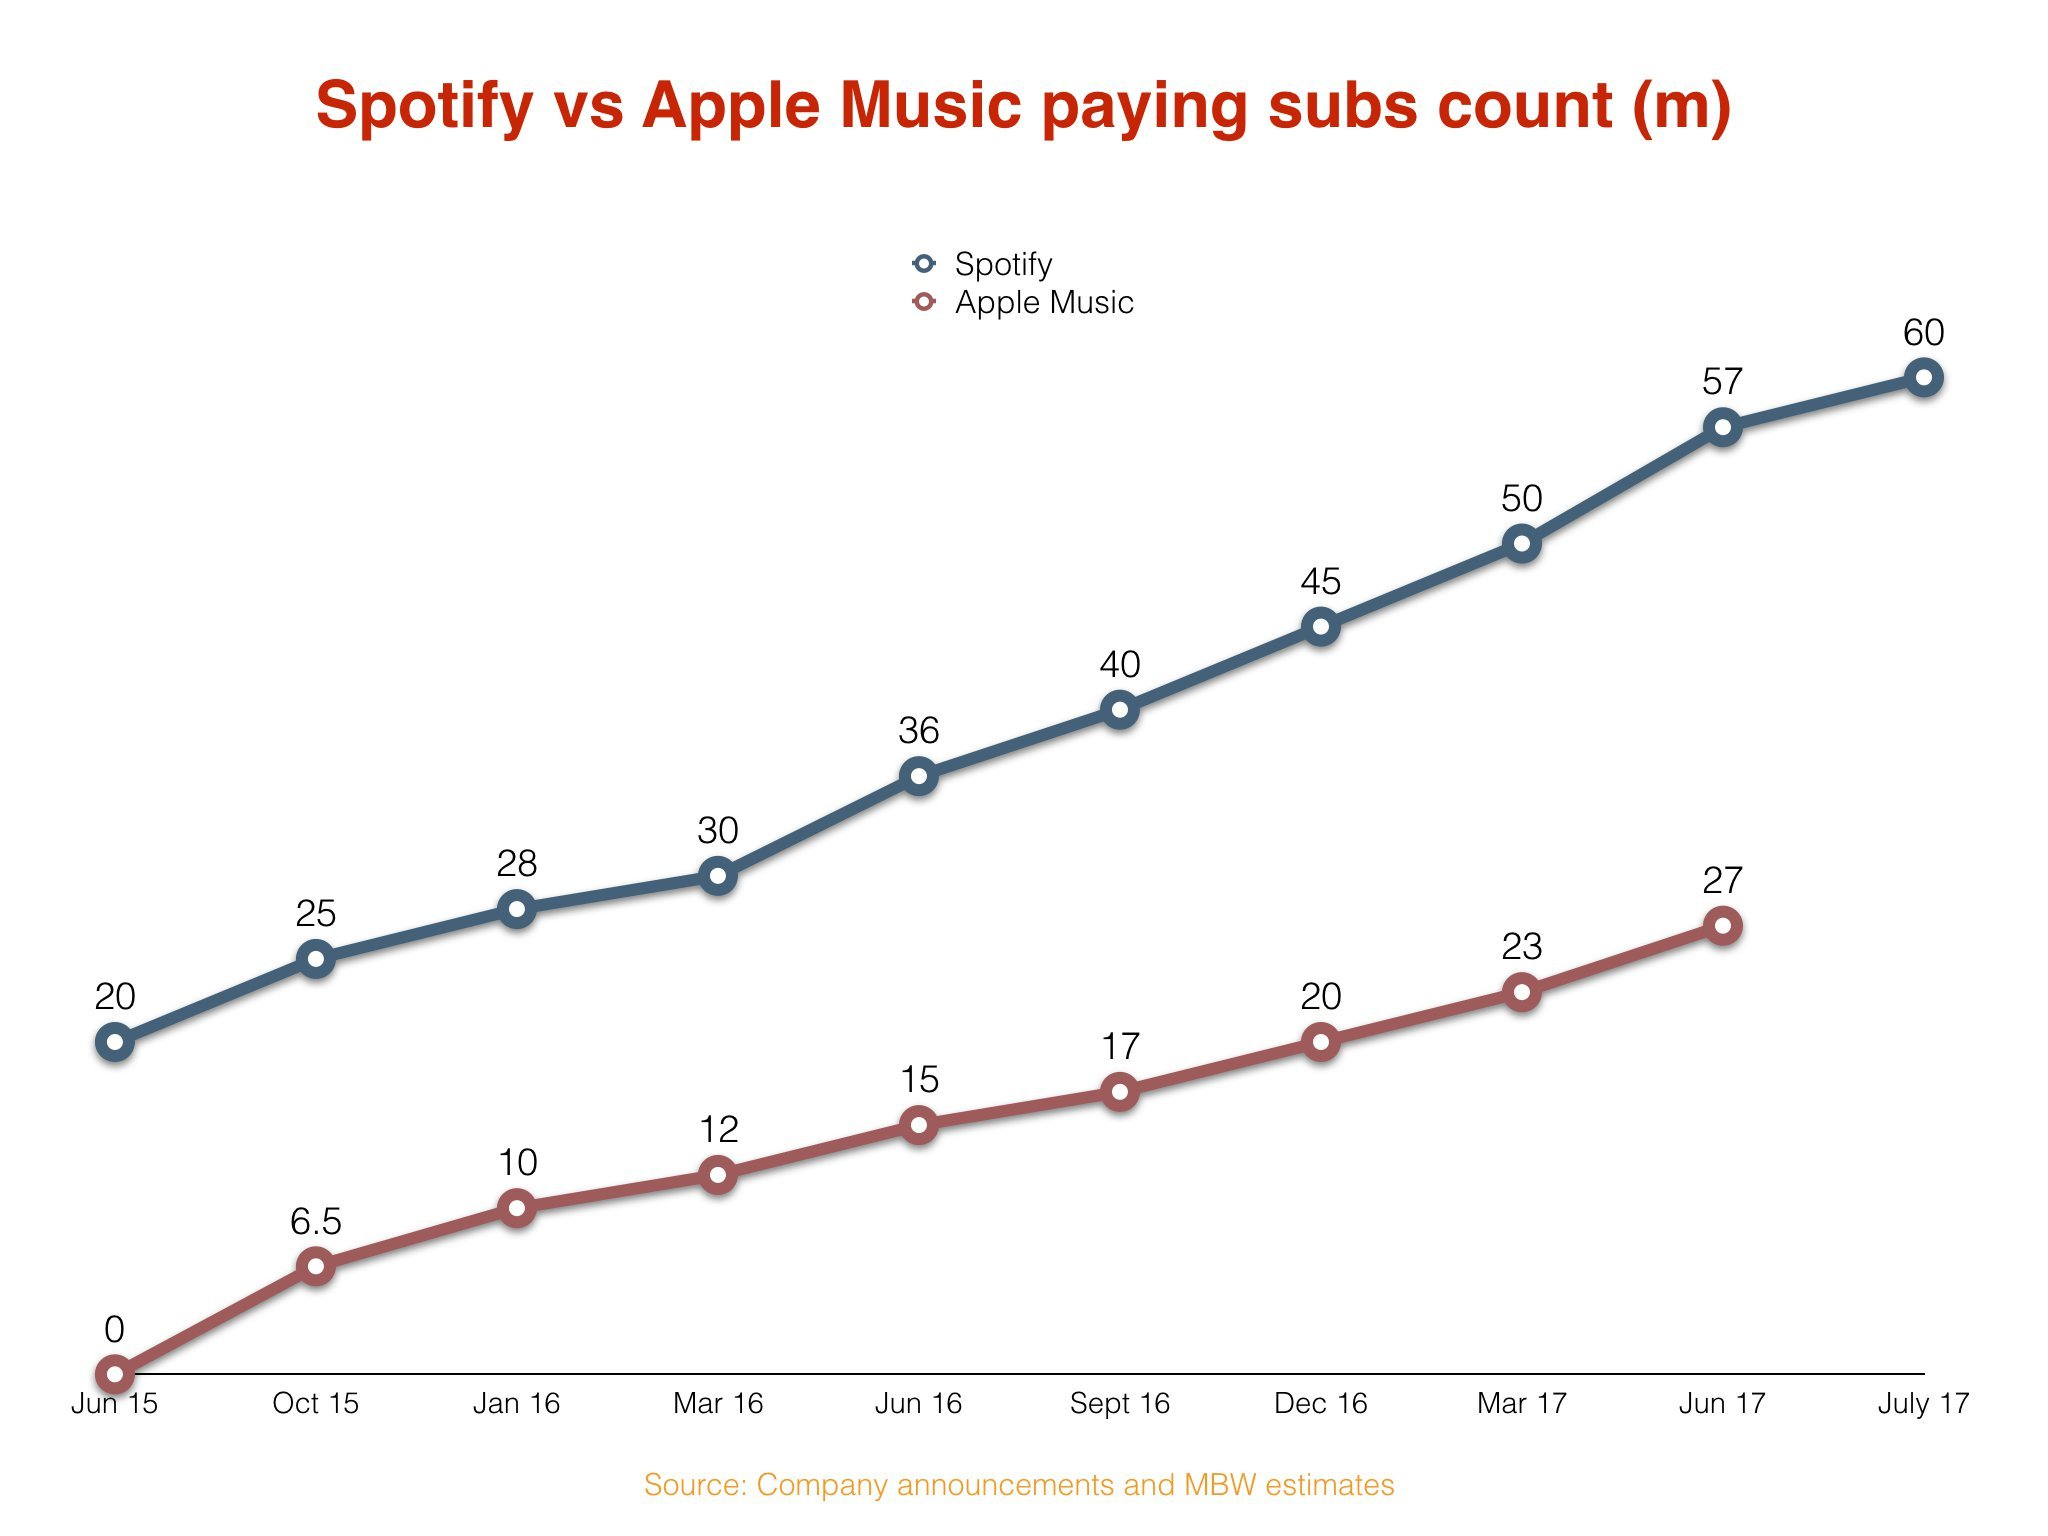 Spotify Surpasses 60M Paid Subscribers, Now Adding 2M Per Month